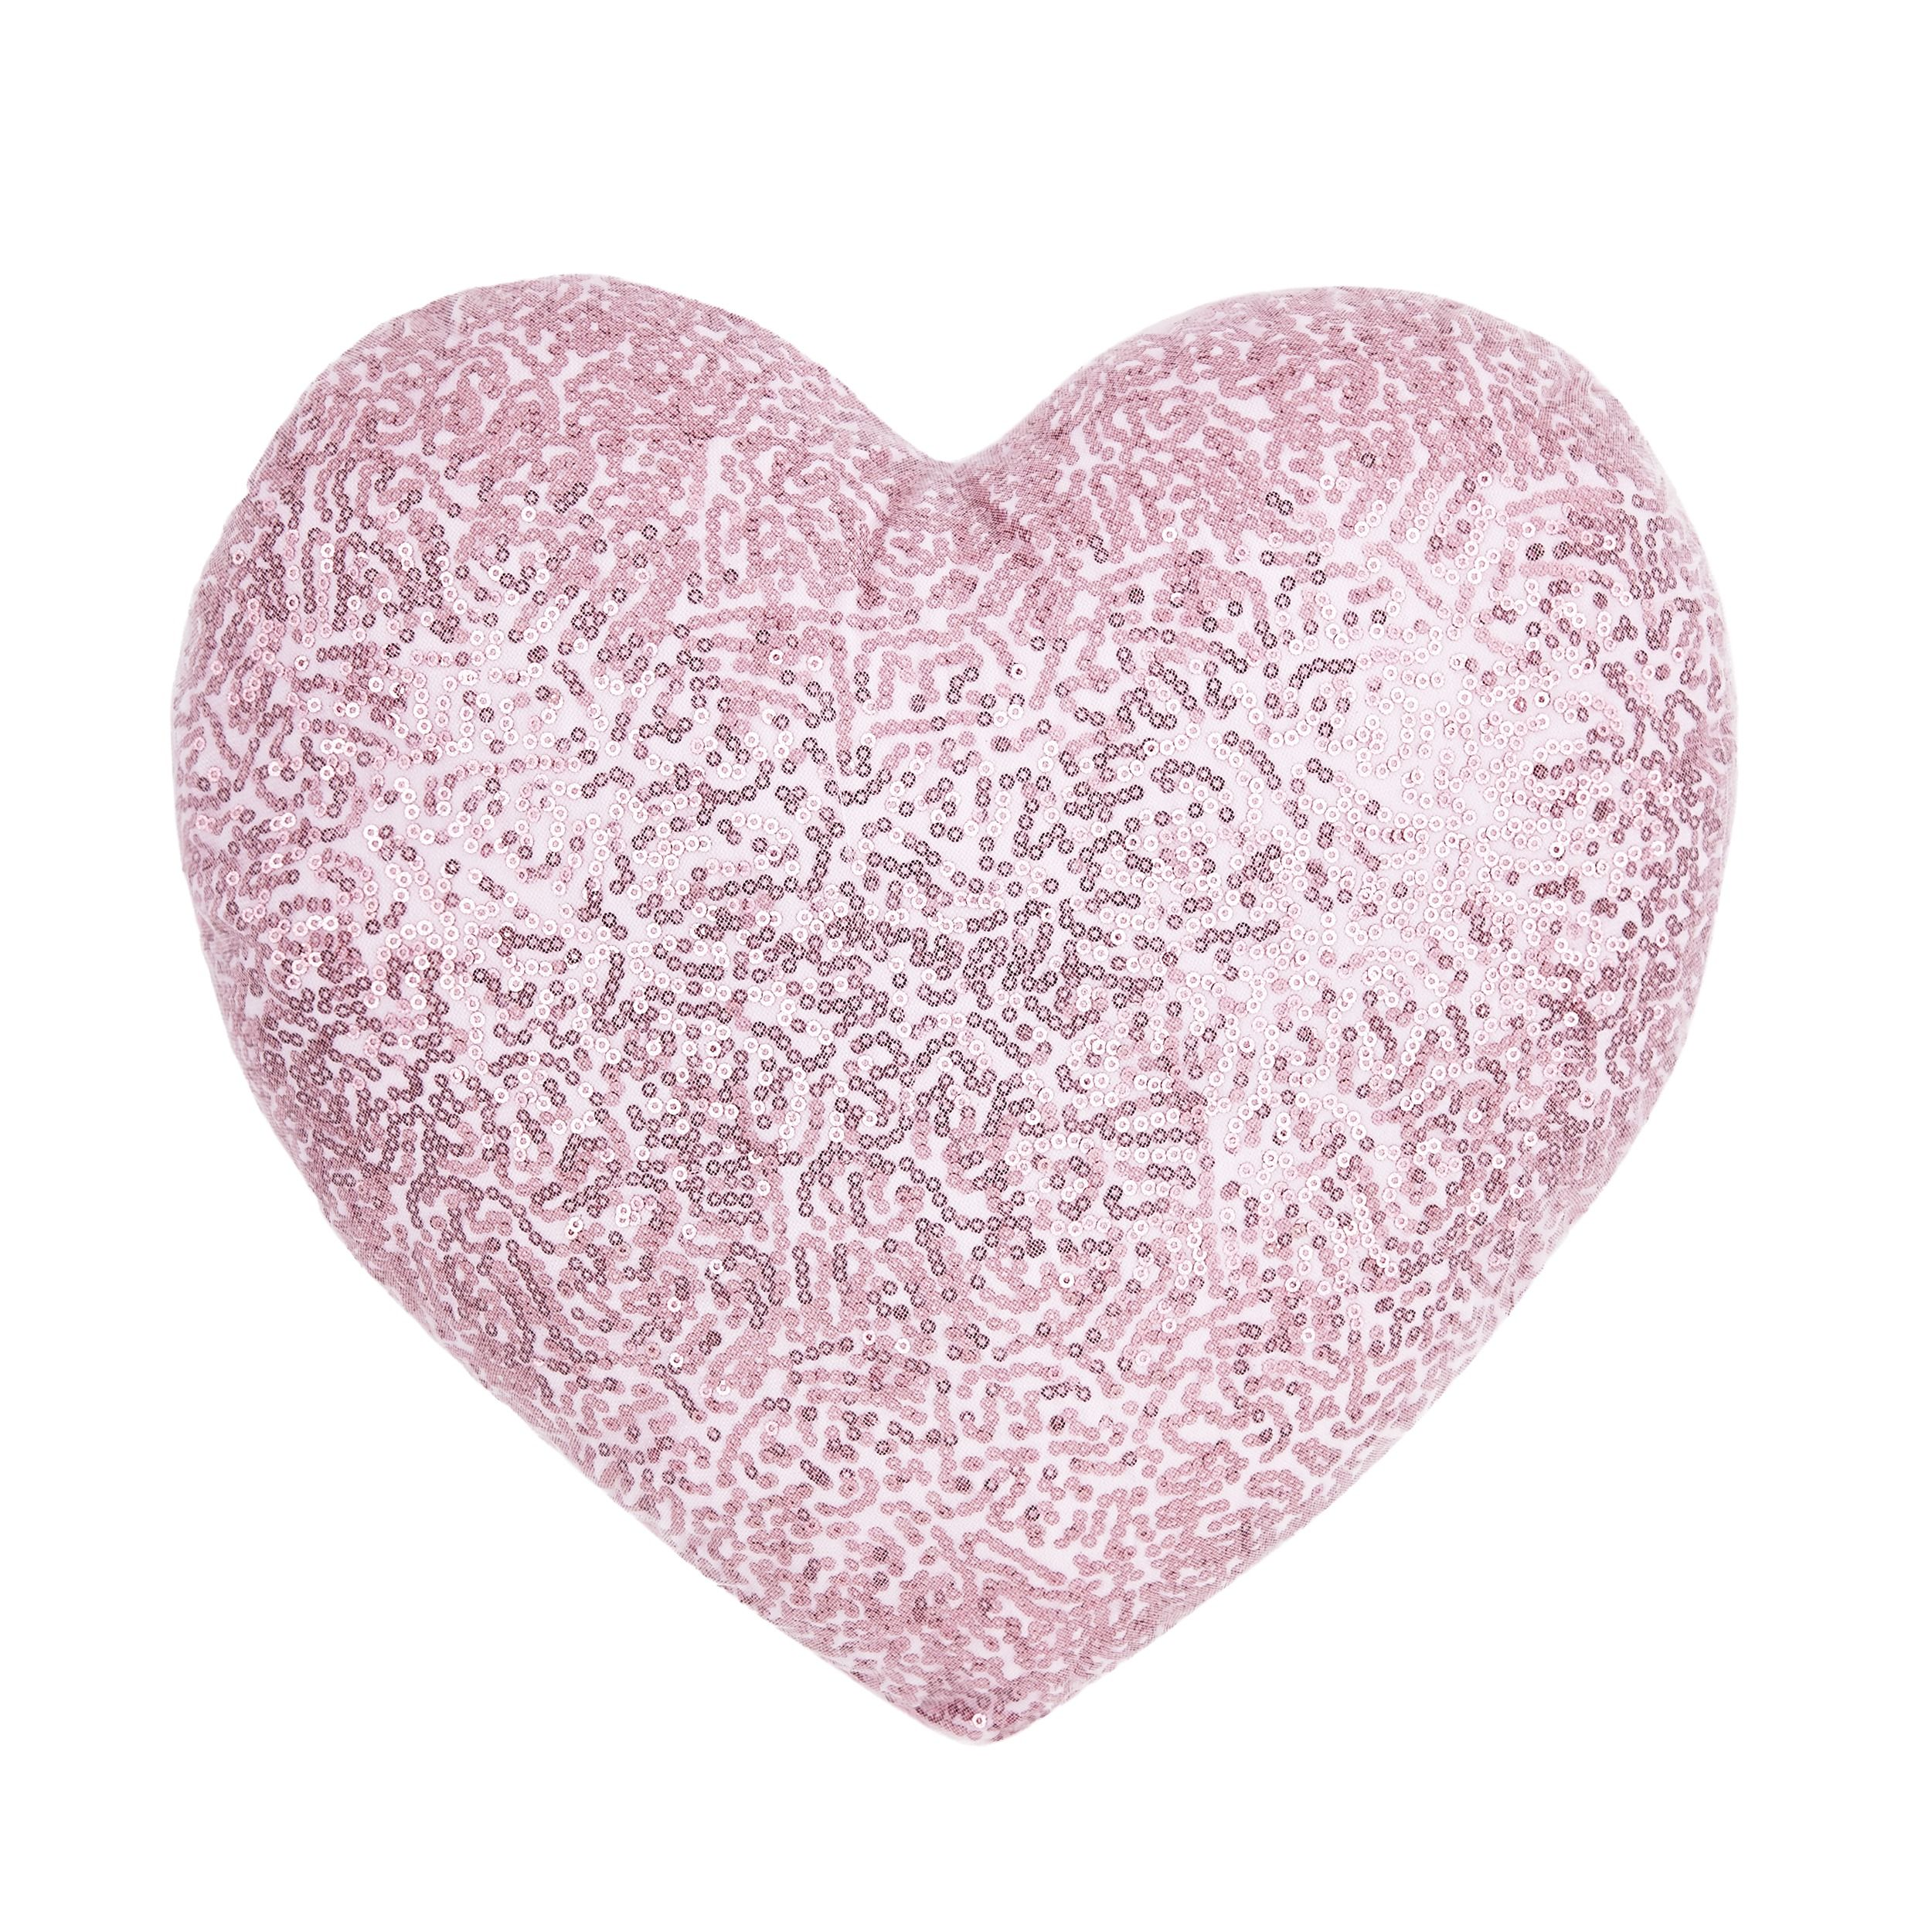 Heart Shaped Pillow with more hearts